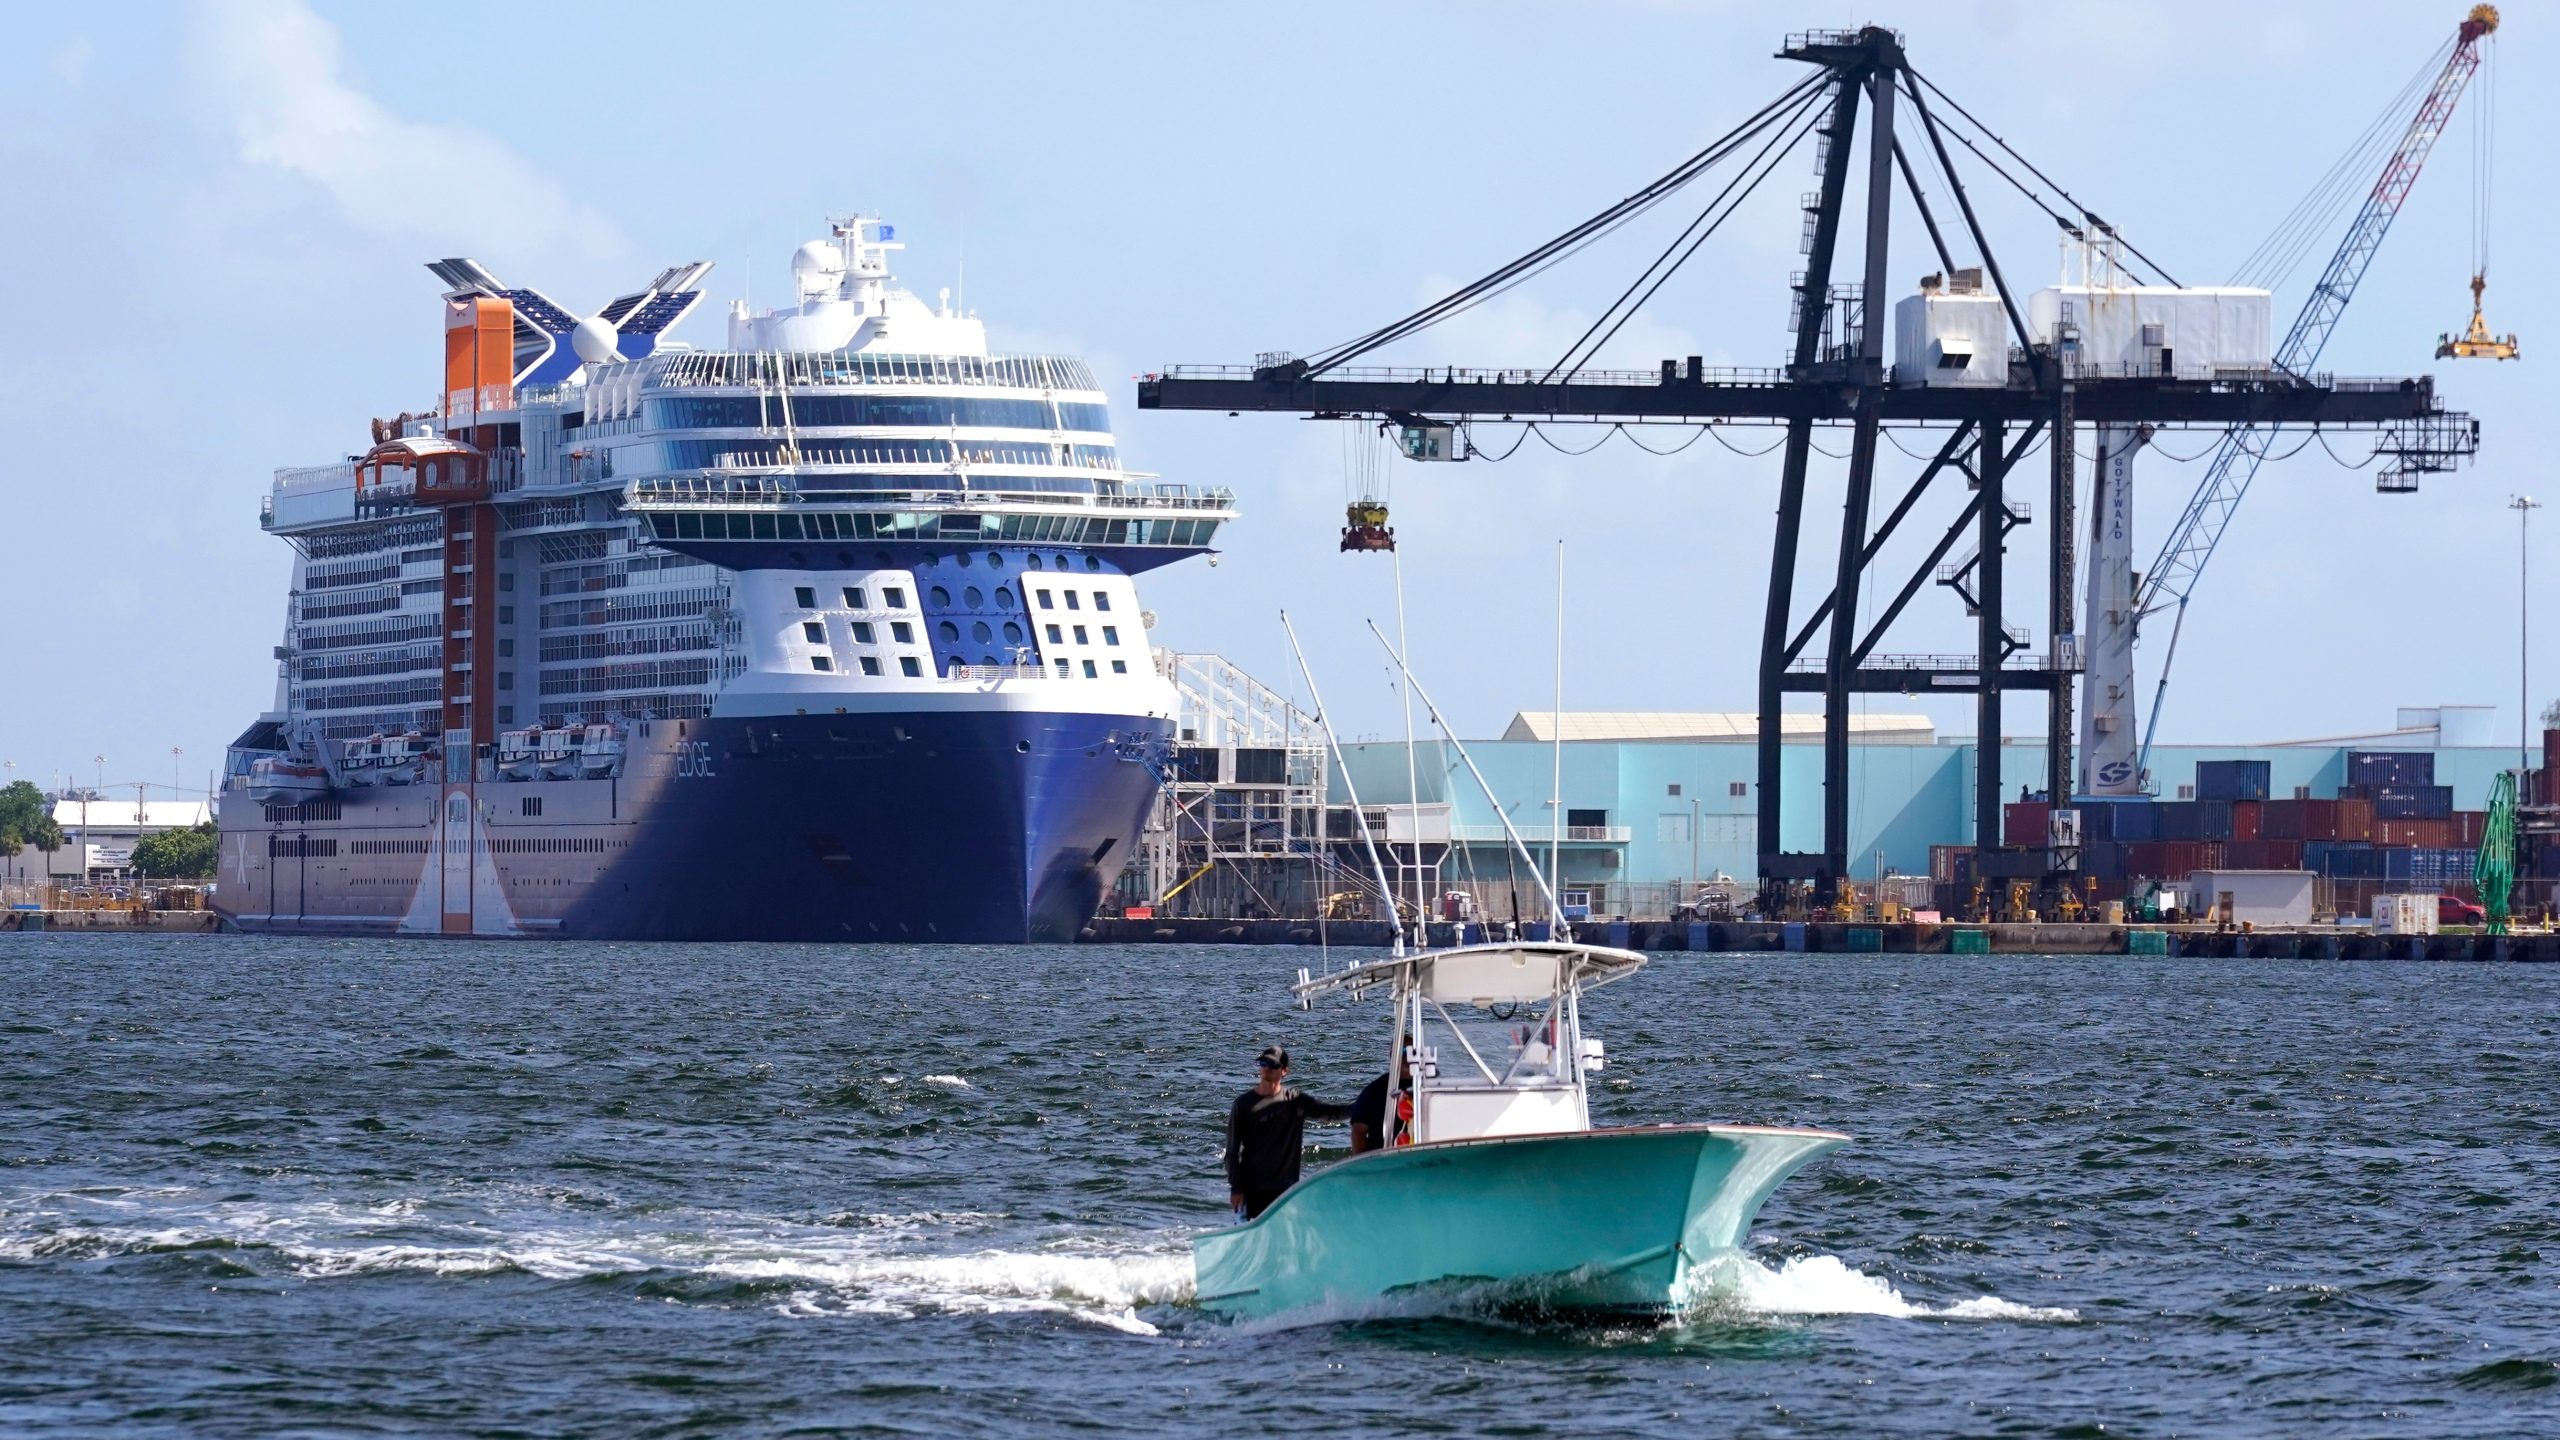 The Celebrity Edge cruise ship is docked at Port Everglades, Tuesday, June 22, 2021, in Fort Lauderdale, Fla. The Celebrity Edge is set to sail on Saturday from Fort Lauderdale. It will be the first cruise ship to leave a U.S. port with ticketed passengers since the onset of the pandemic, which halted sailing. (AP Photo/Lynne Sladky)